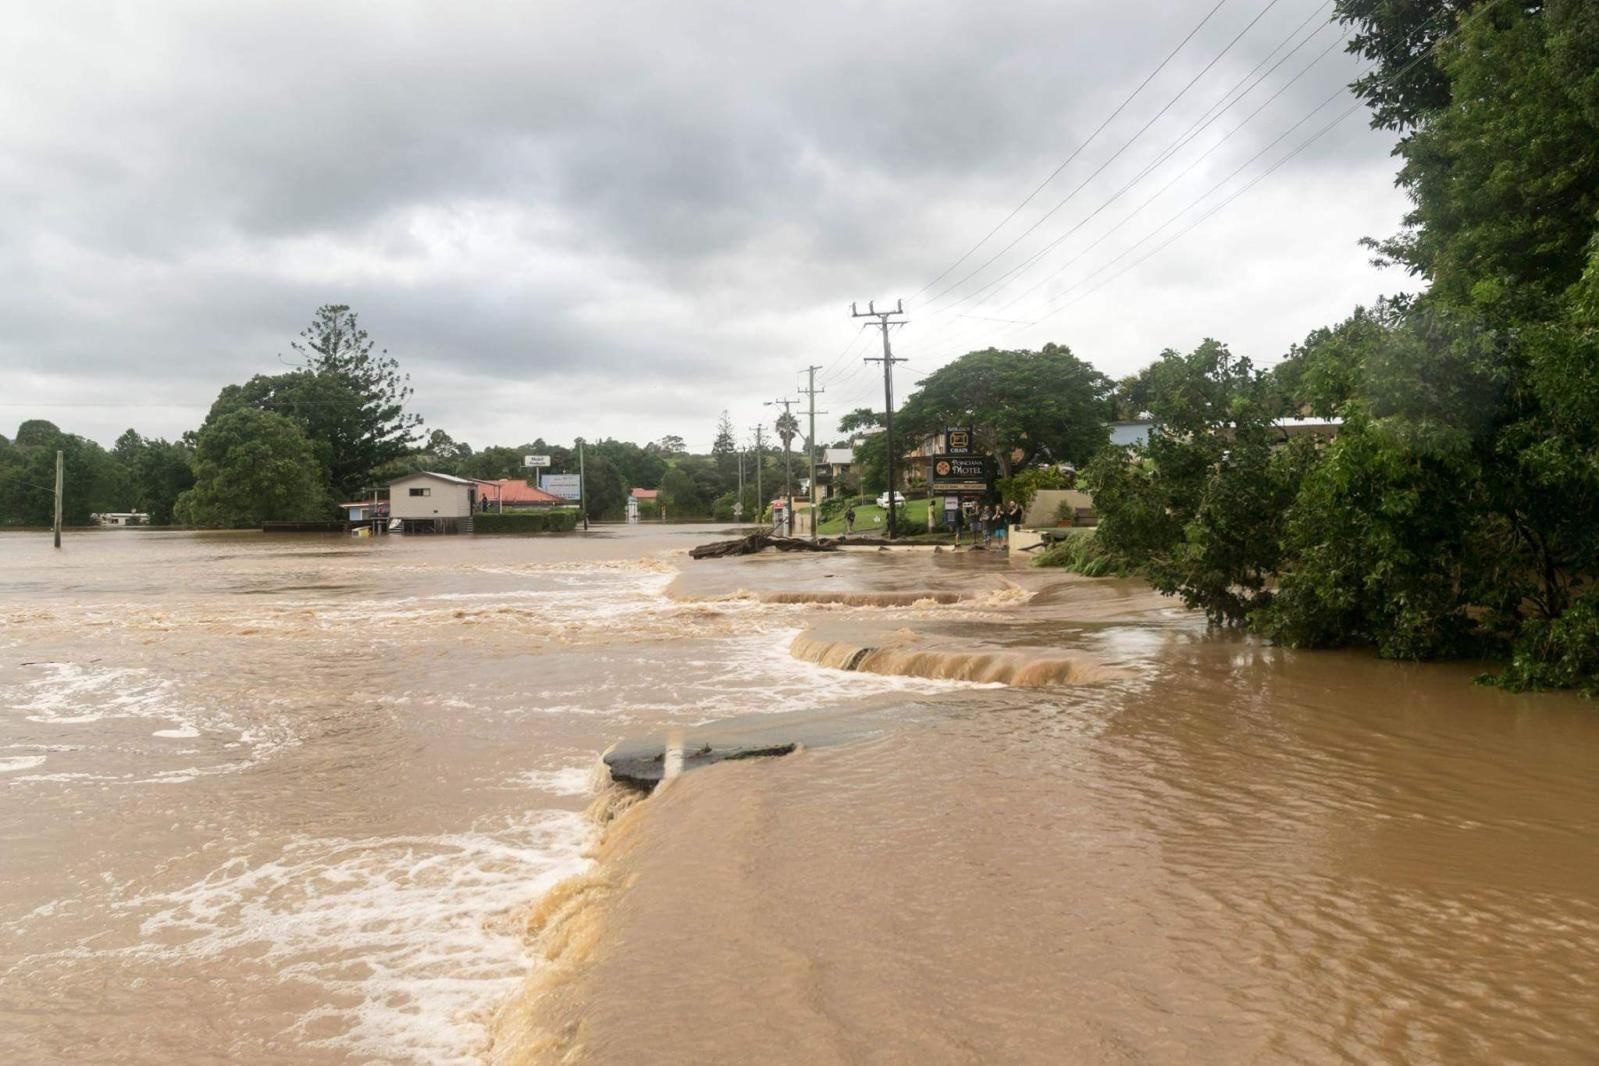 Thousands evacuated as remnants of ex-tropical Cyclone Debbie widely felt